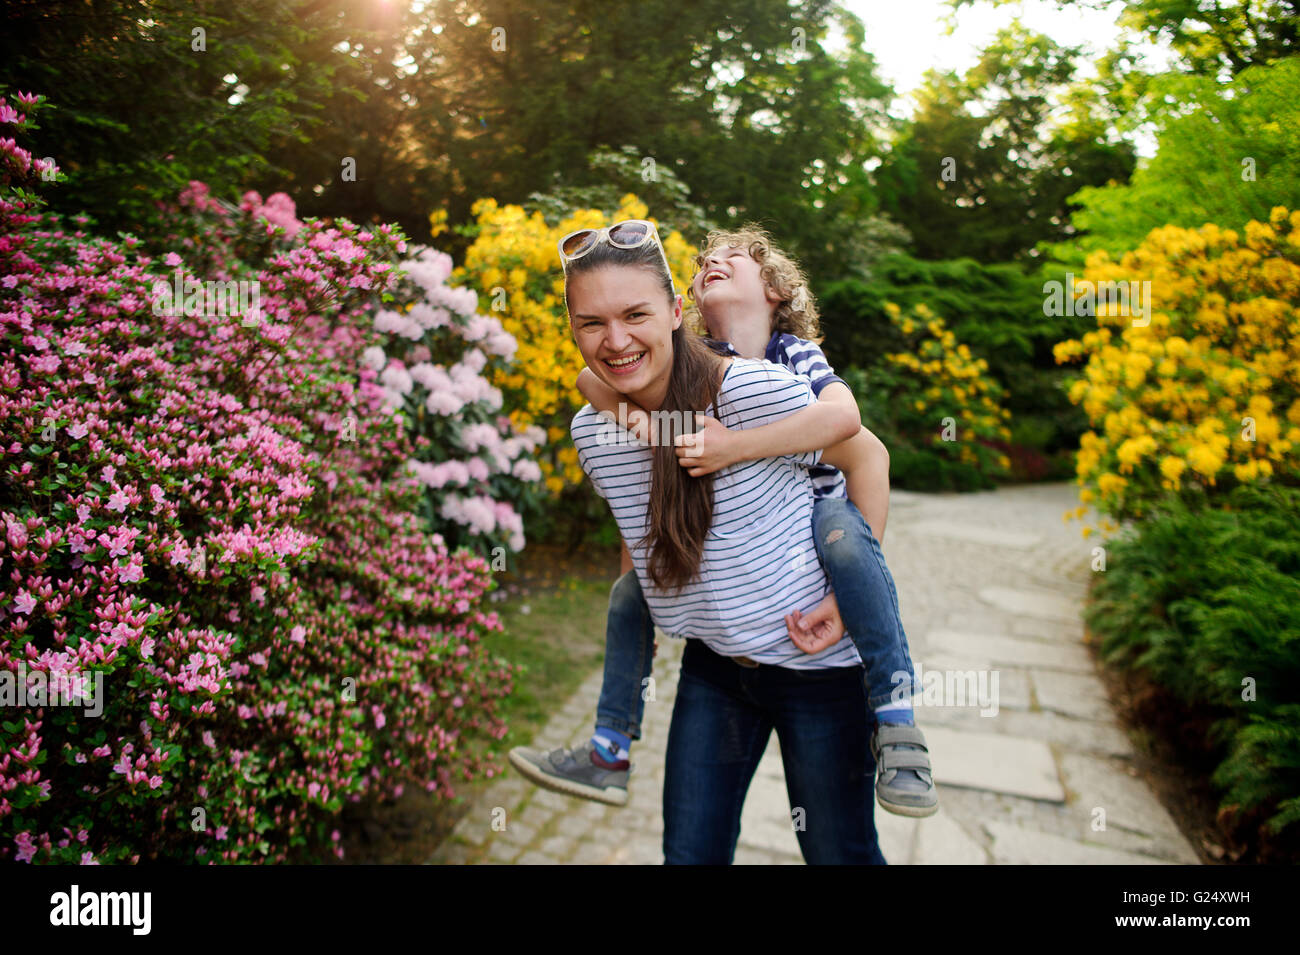 The young woman holds the boy on shoulders - Stock Image